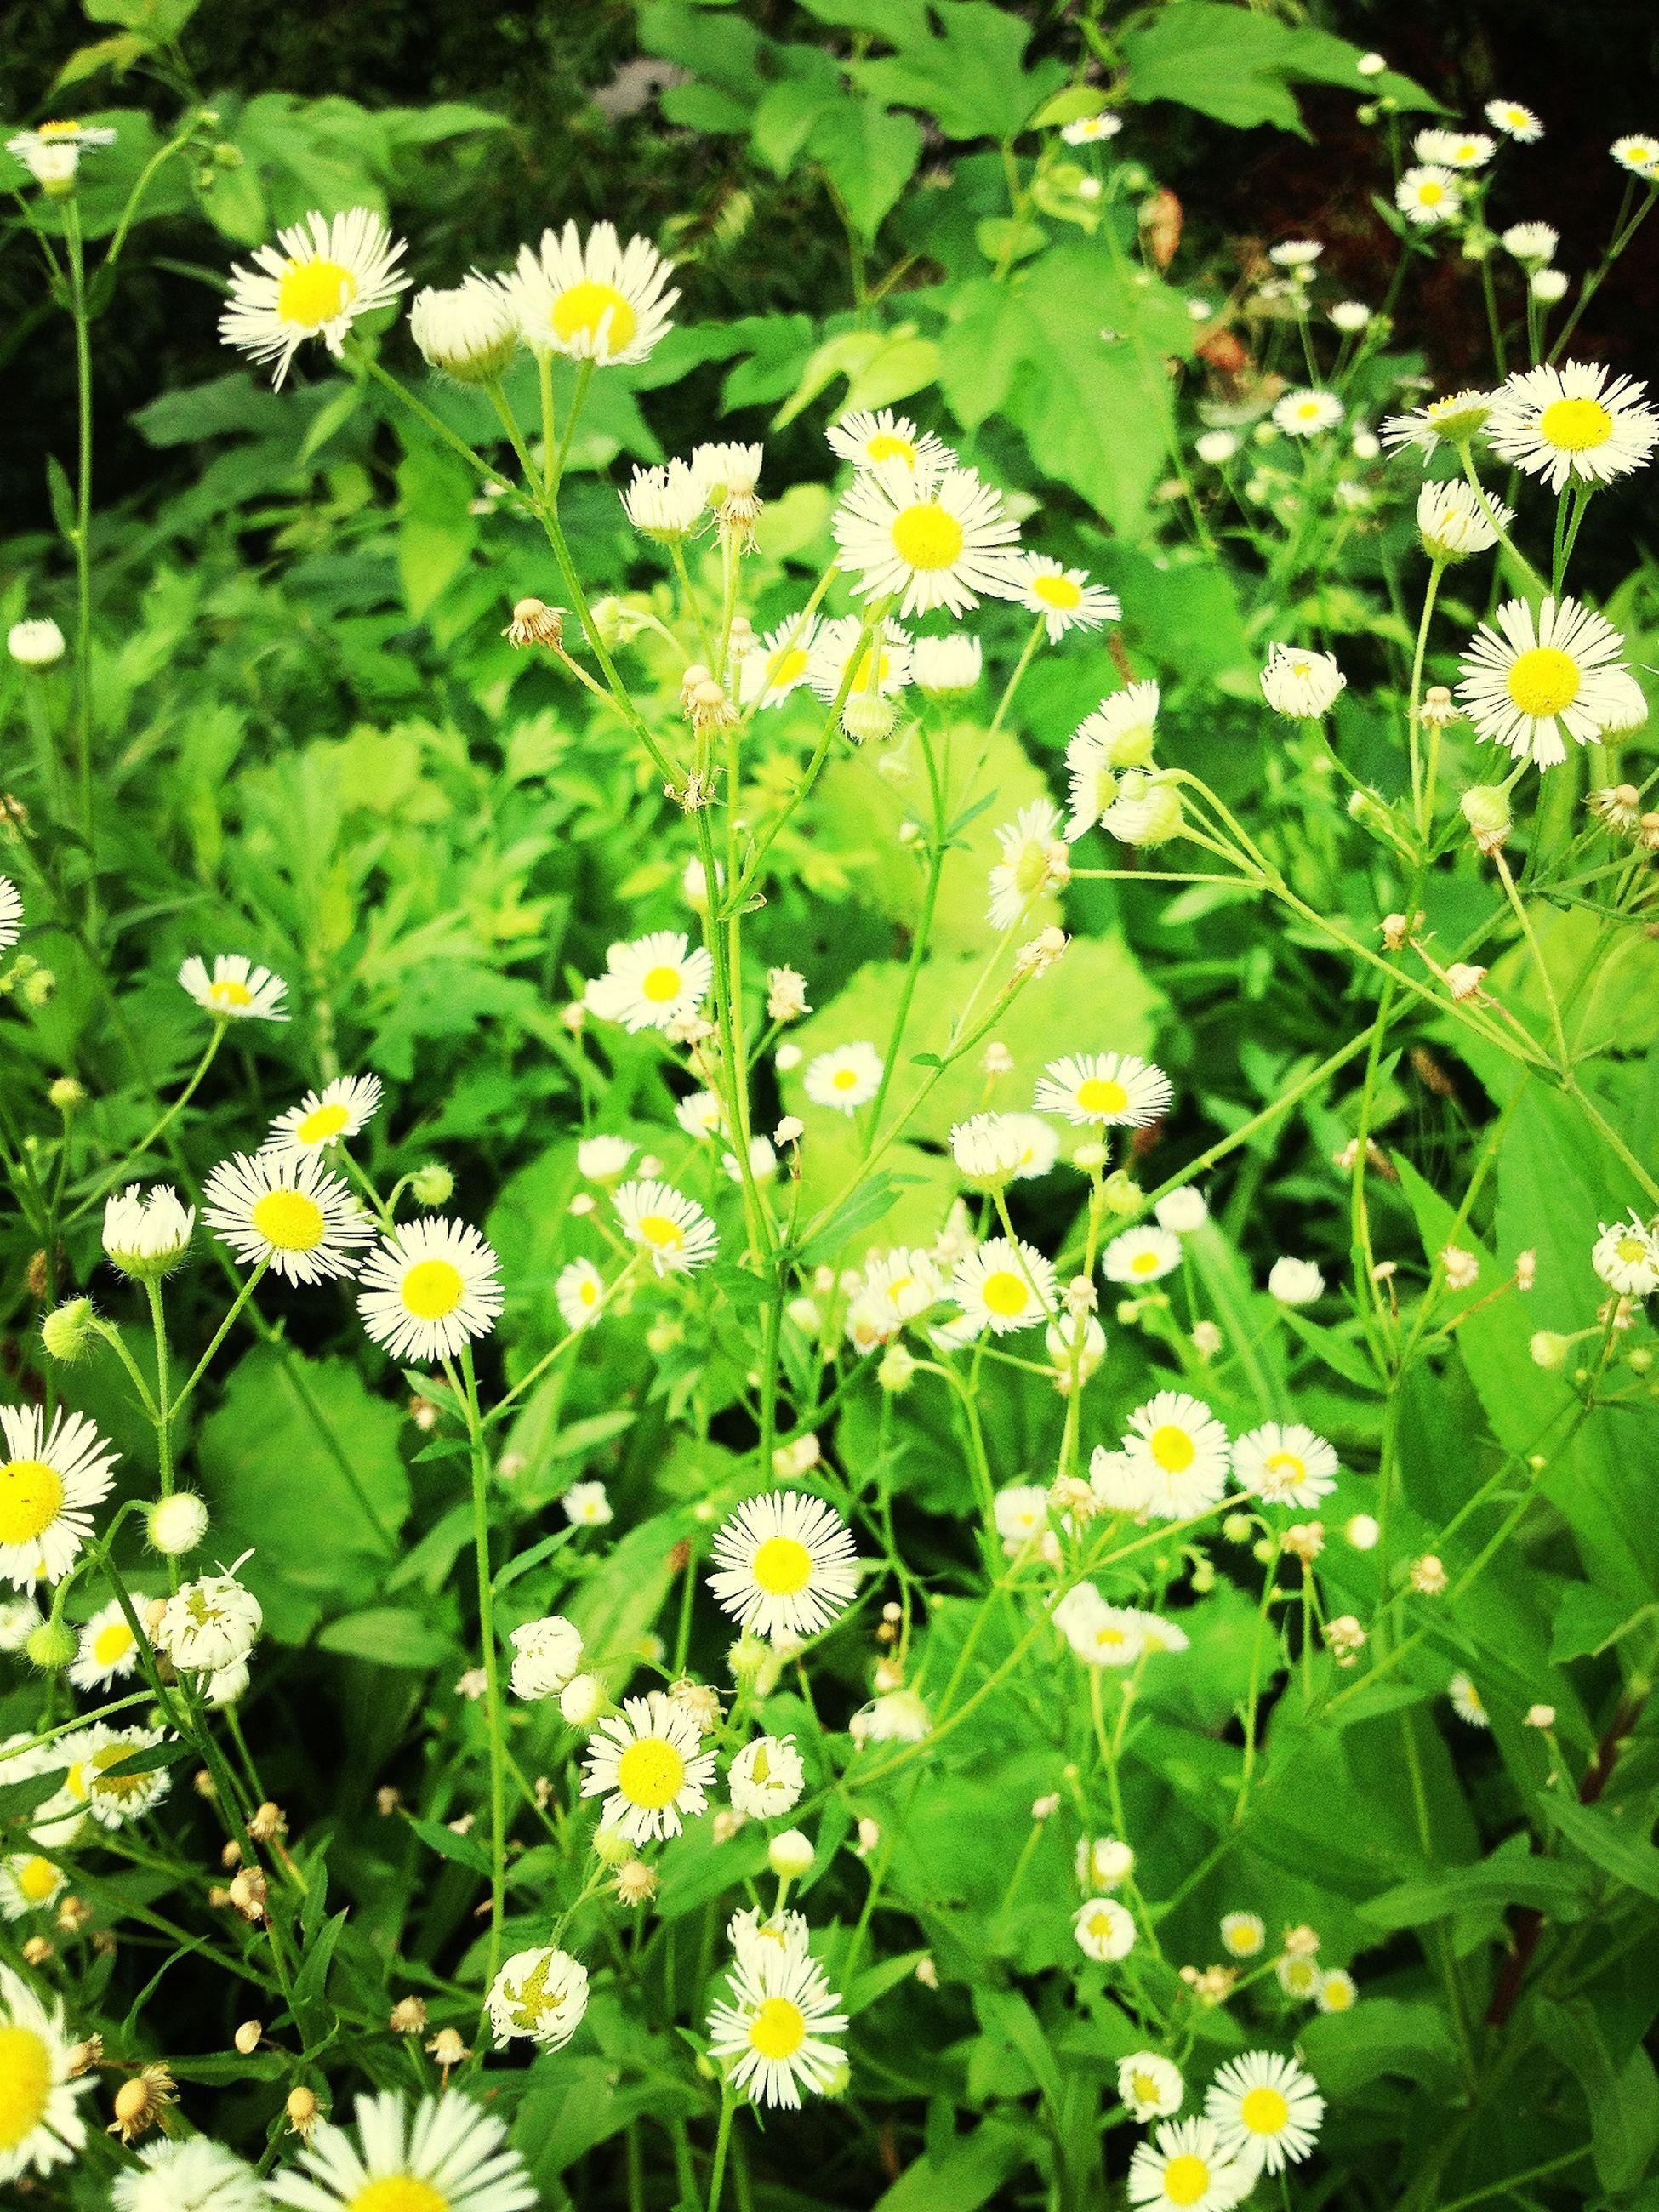 flower, freshness, growth, fragility, petal, yellow, beauty in nature, white color, plant, blooming, flower head, green color, nature, daisy, high angle view, leaf, in bloom, field, outdoors, day